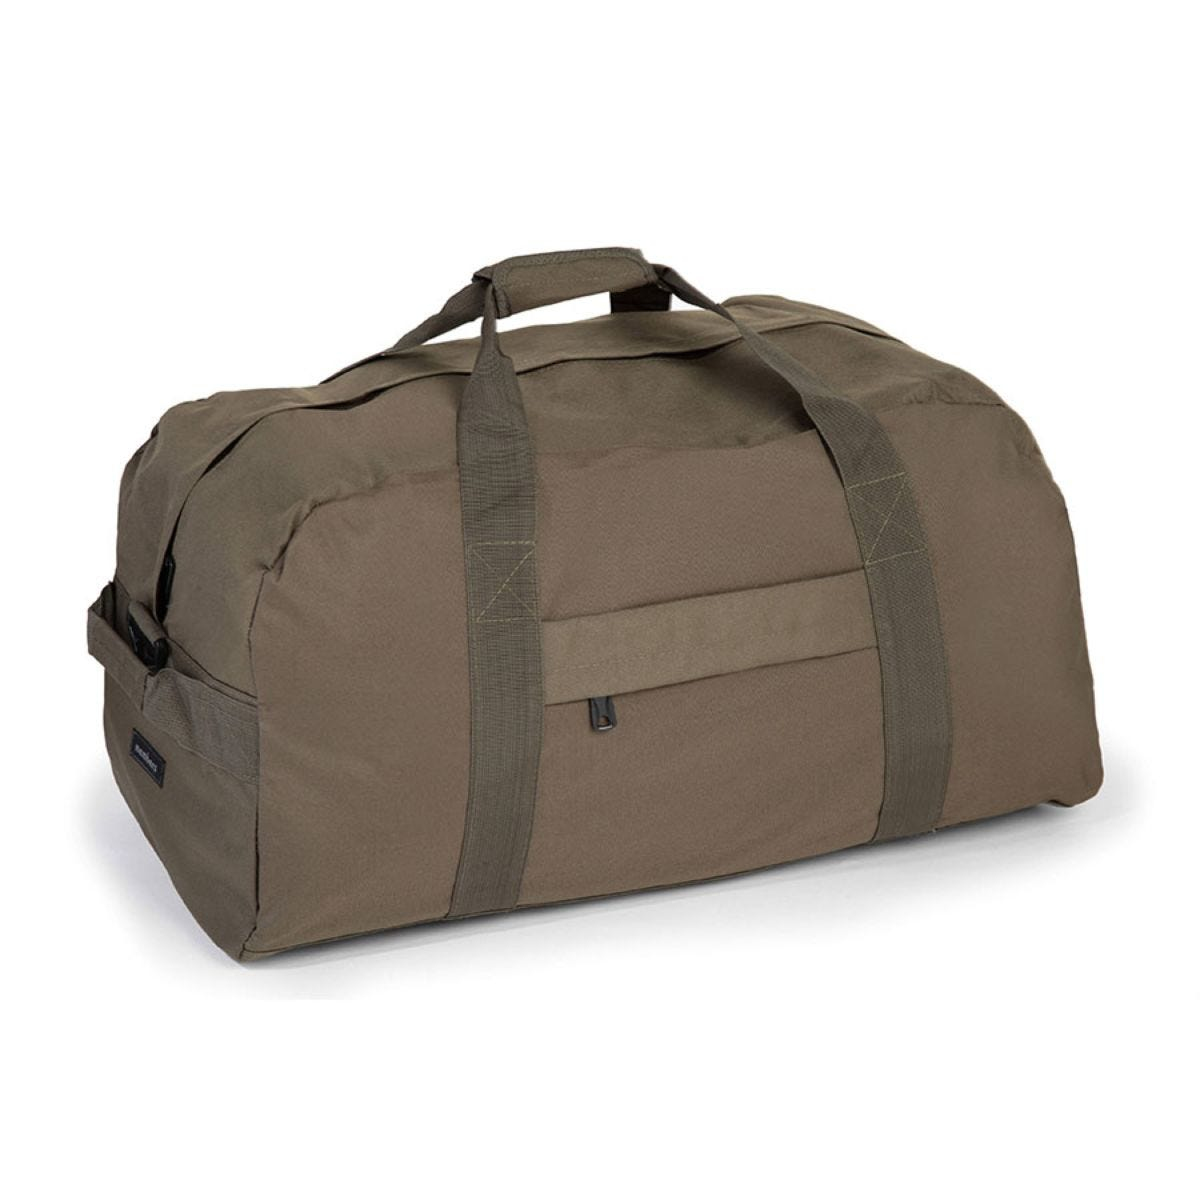 Members Medium 65cm Holdall / Duffle Bag - Khaki